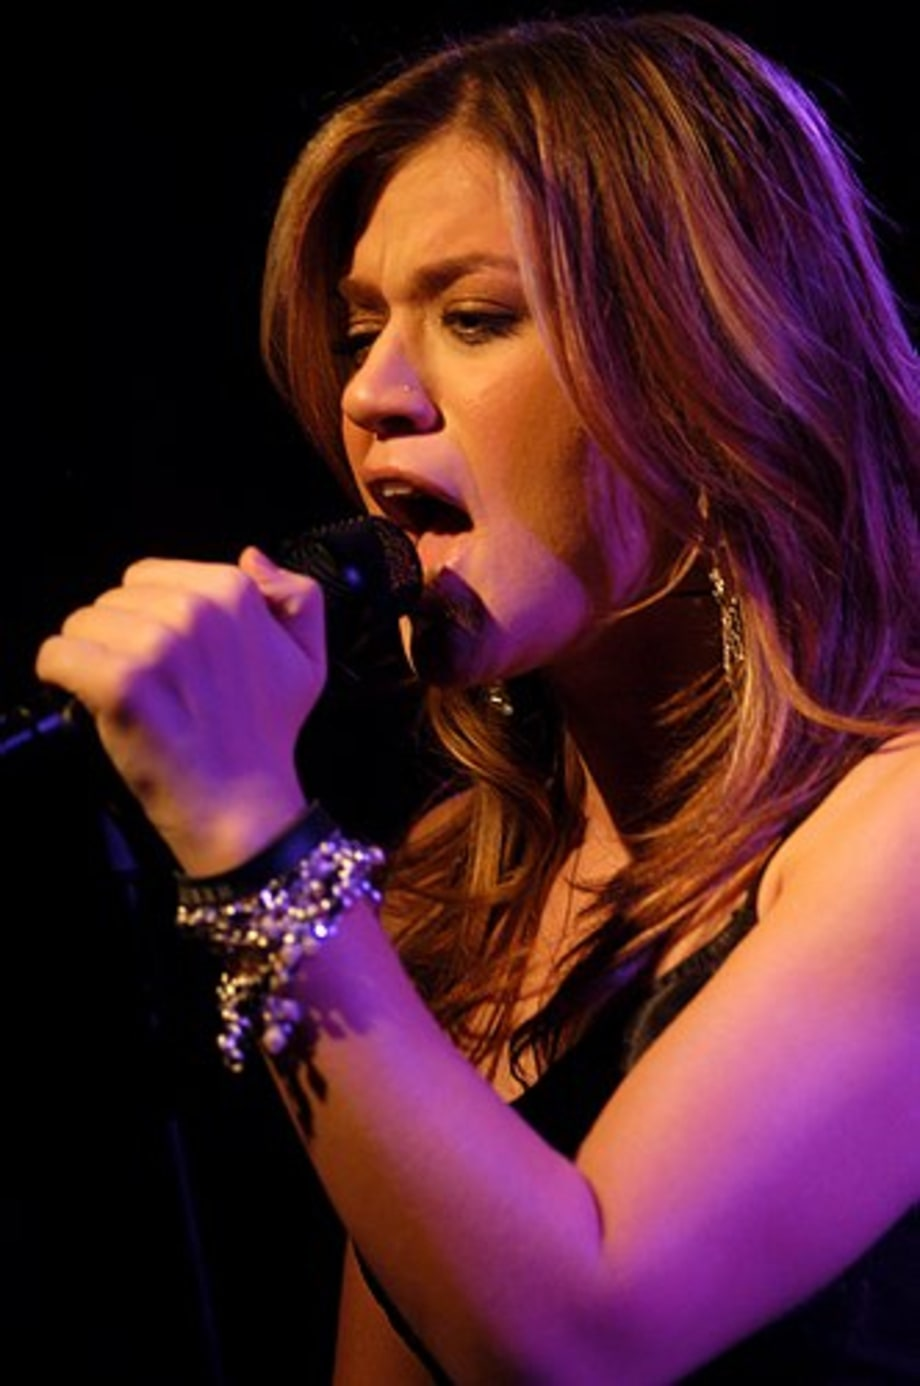 Kelly Clarkson 10 - performance - Quad Studios, NYC 12/8/04 large